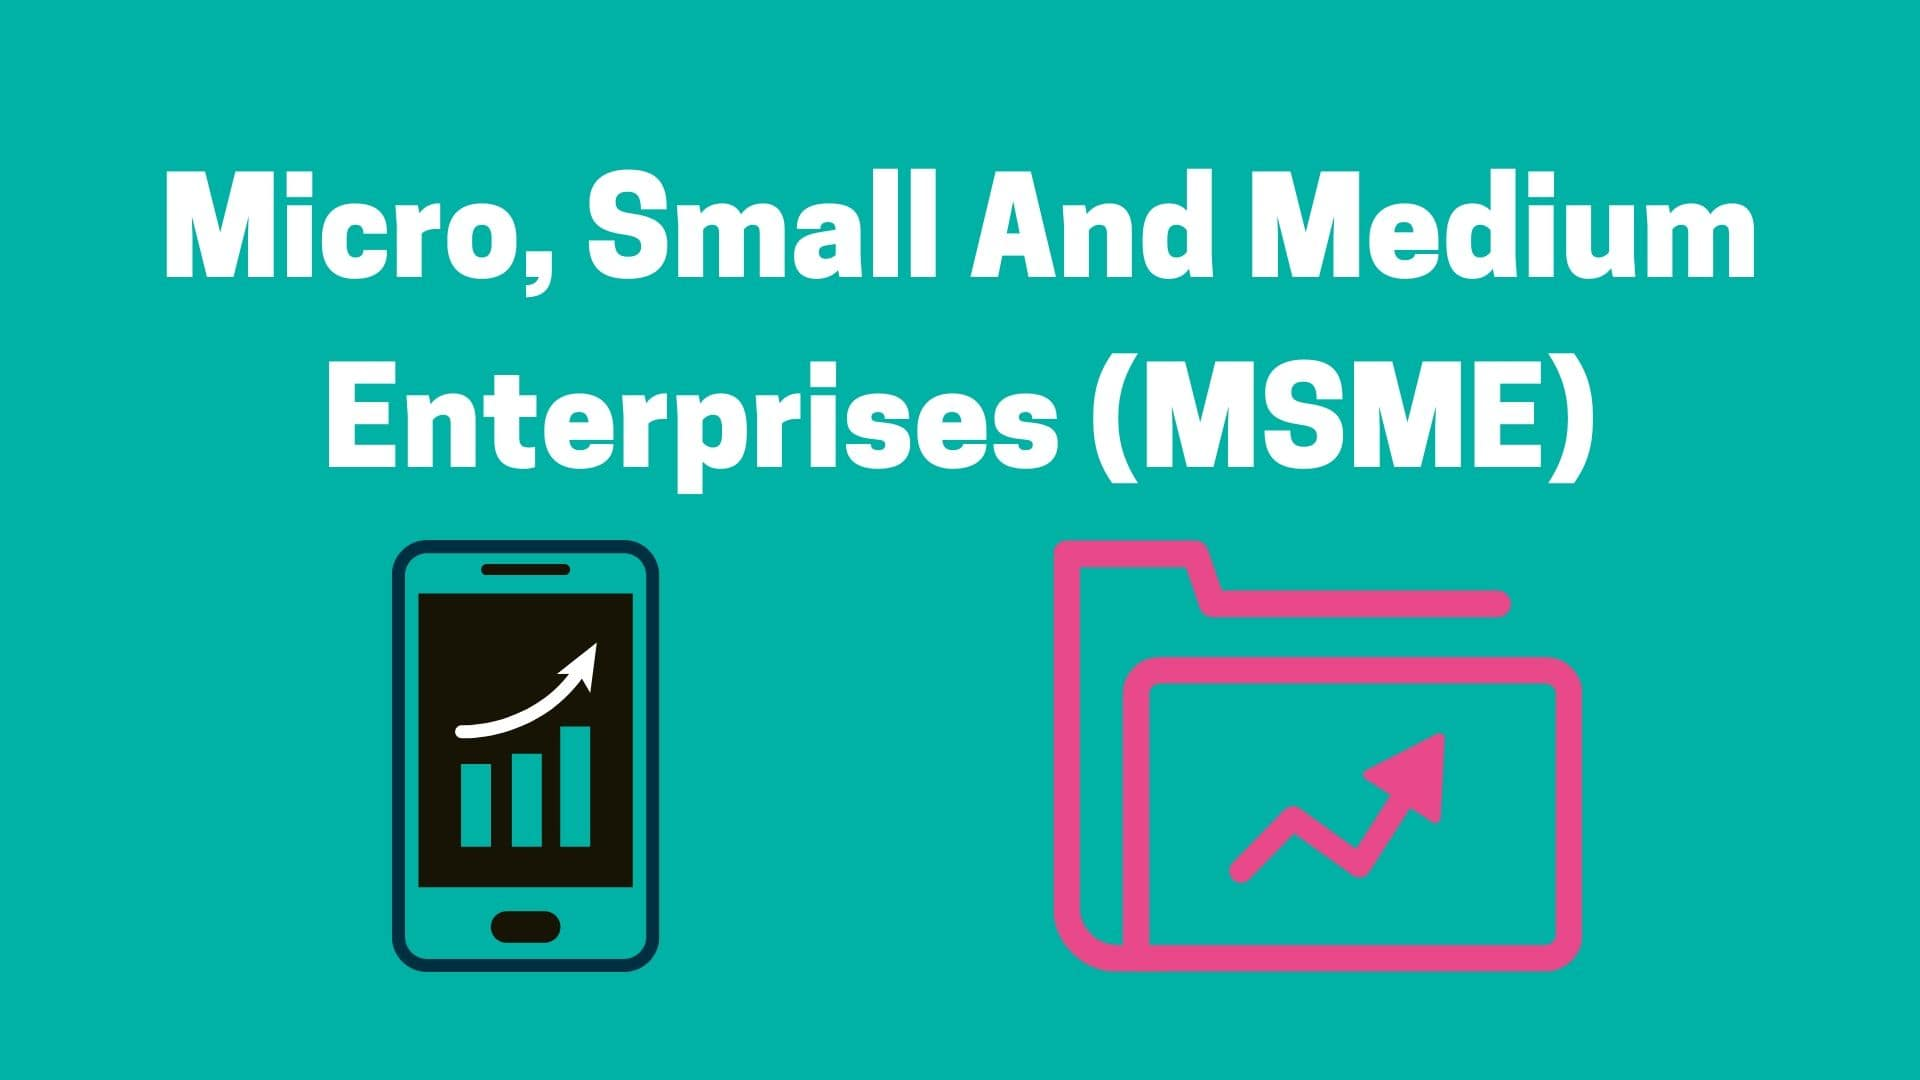 Micro, small and Medium Enterprise (MSME)